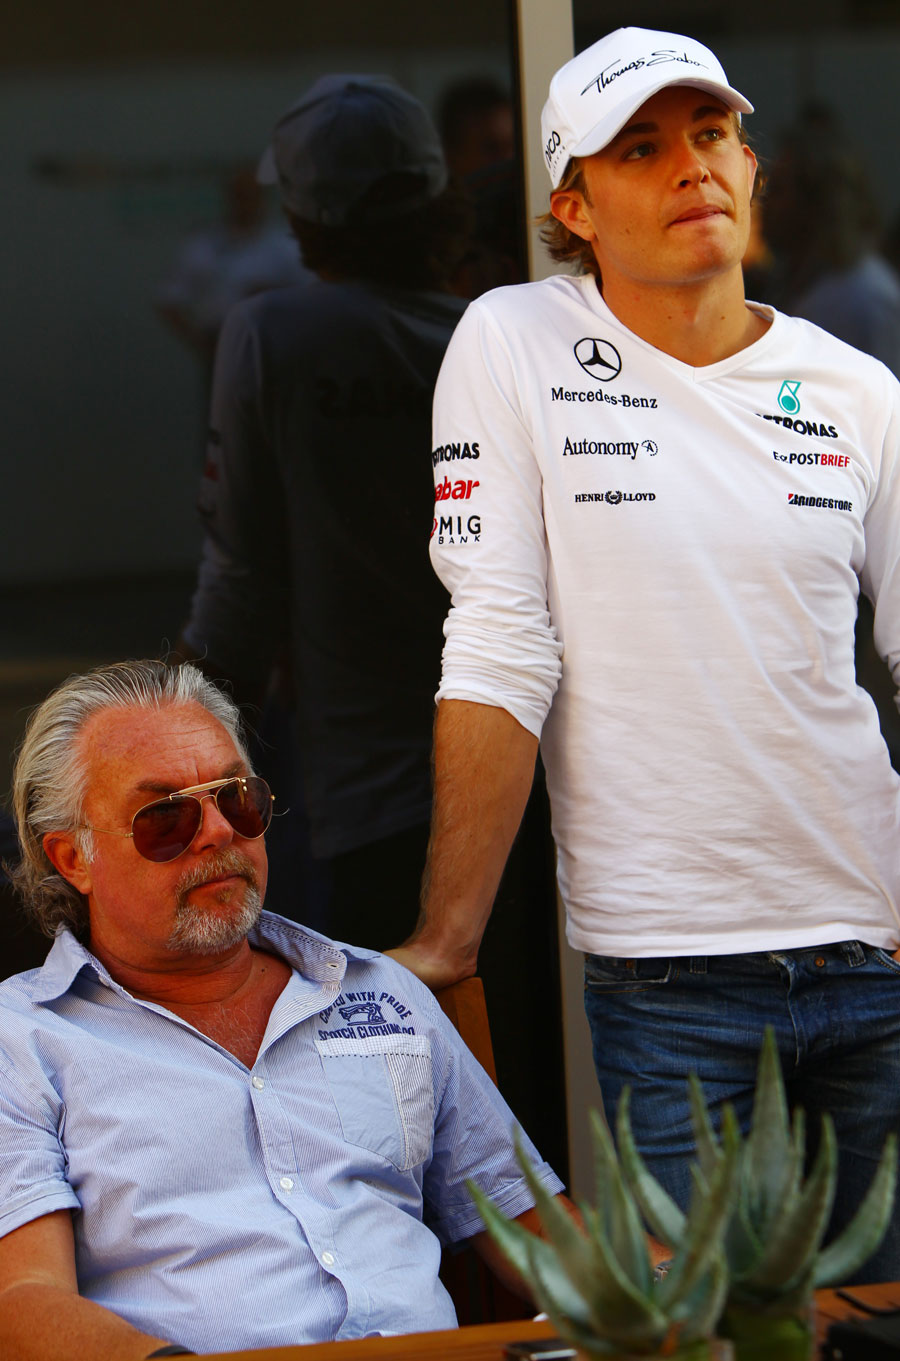 Keke and Nico Rosberg in the paddock